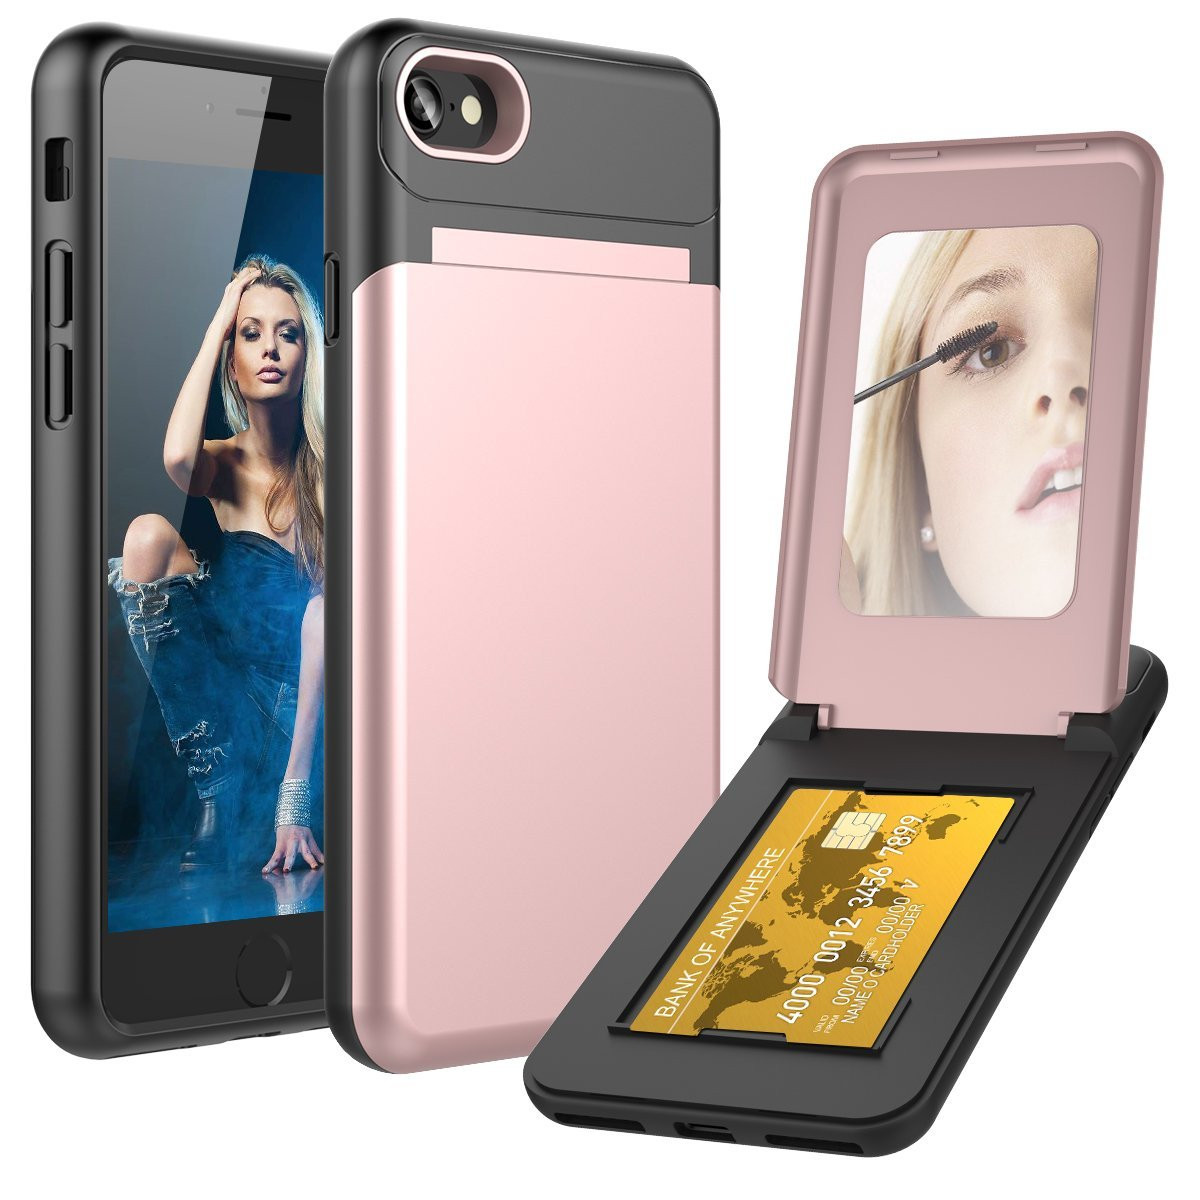 Apple iPhone 6 Plus -  Hard Phone Case with Hidden Mirror and Card Holder Compartment, Rose Gold/Black